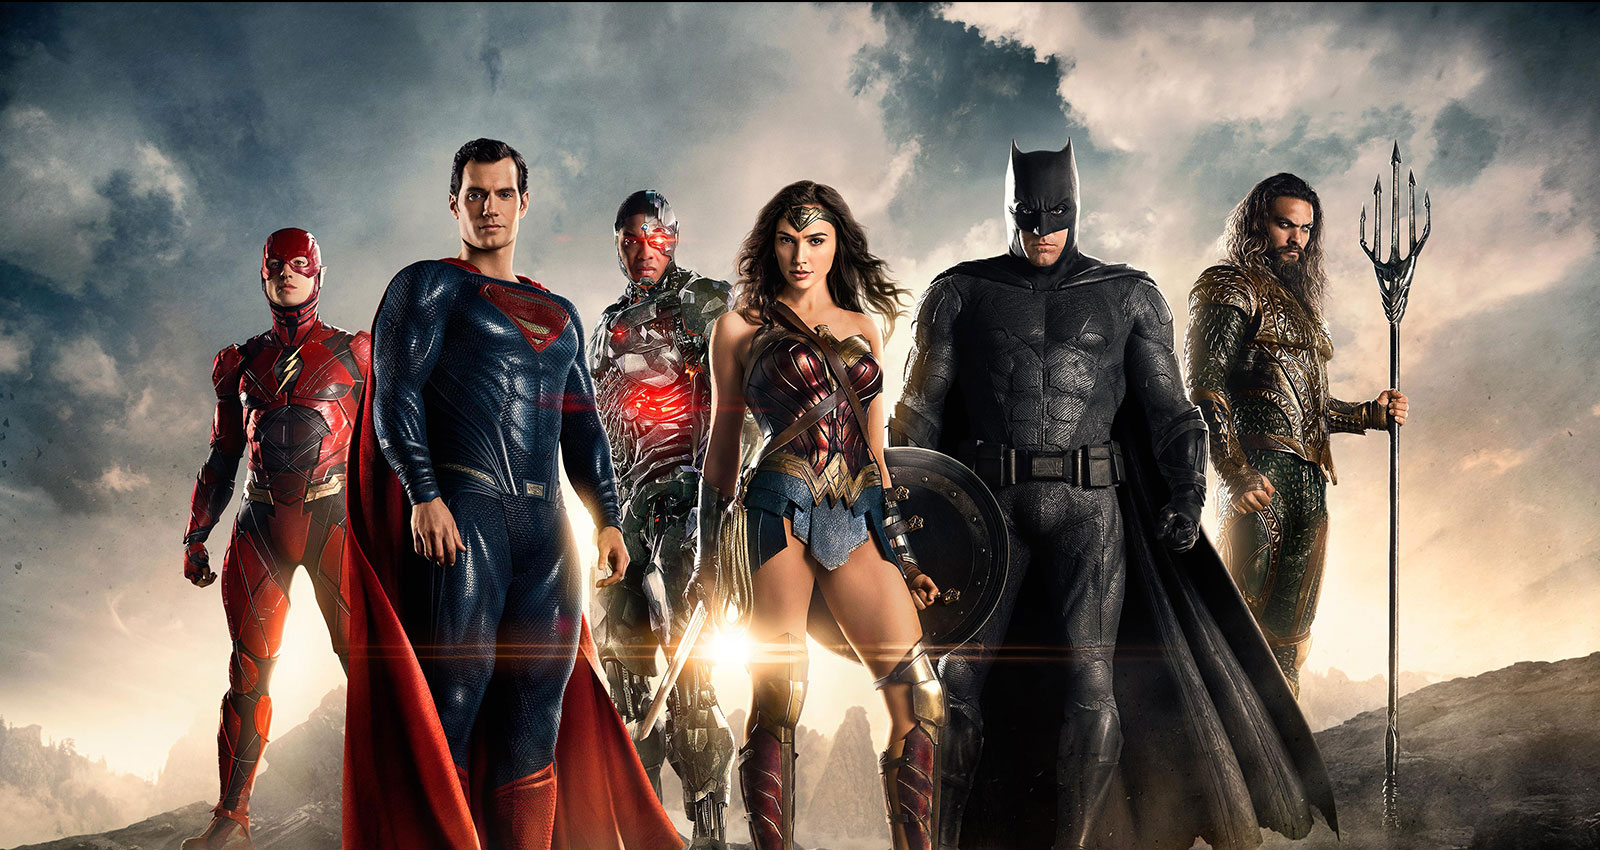 Image of the justice League movie